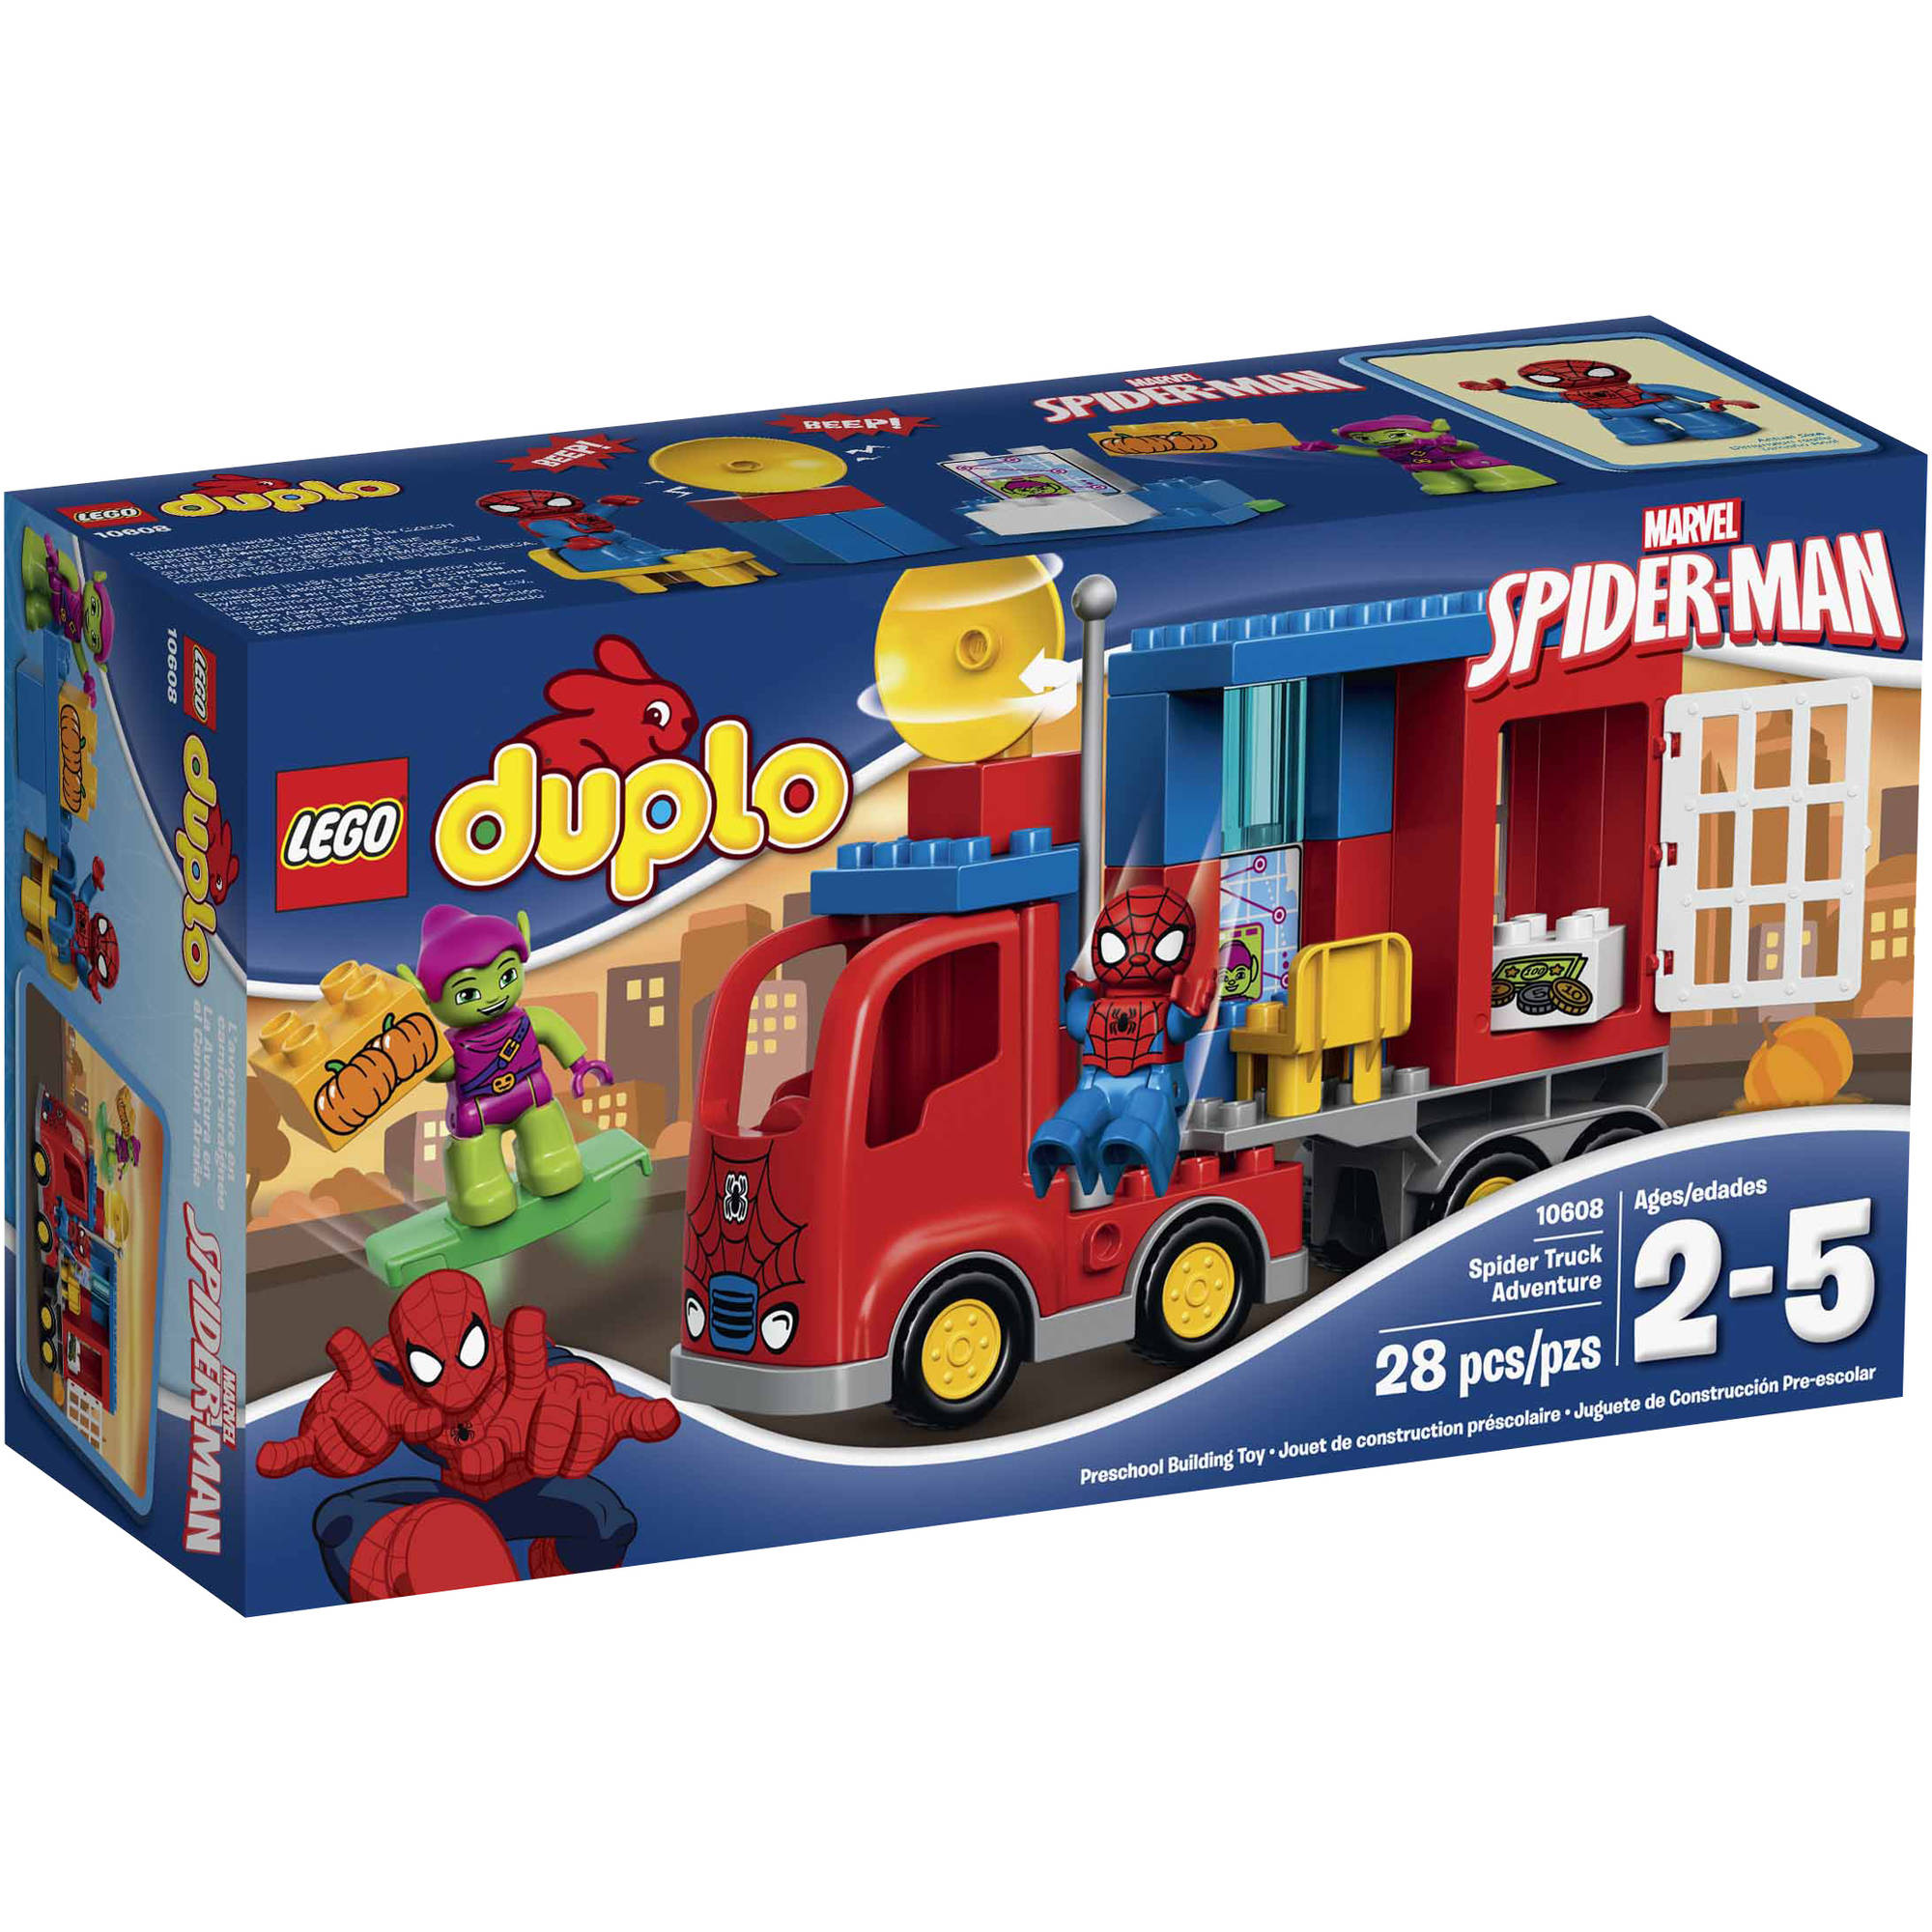 LEGO DUPLO Marvel Spider-Man Spider-Truck Adventure, 10608